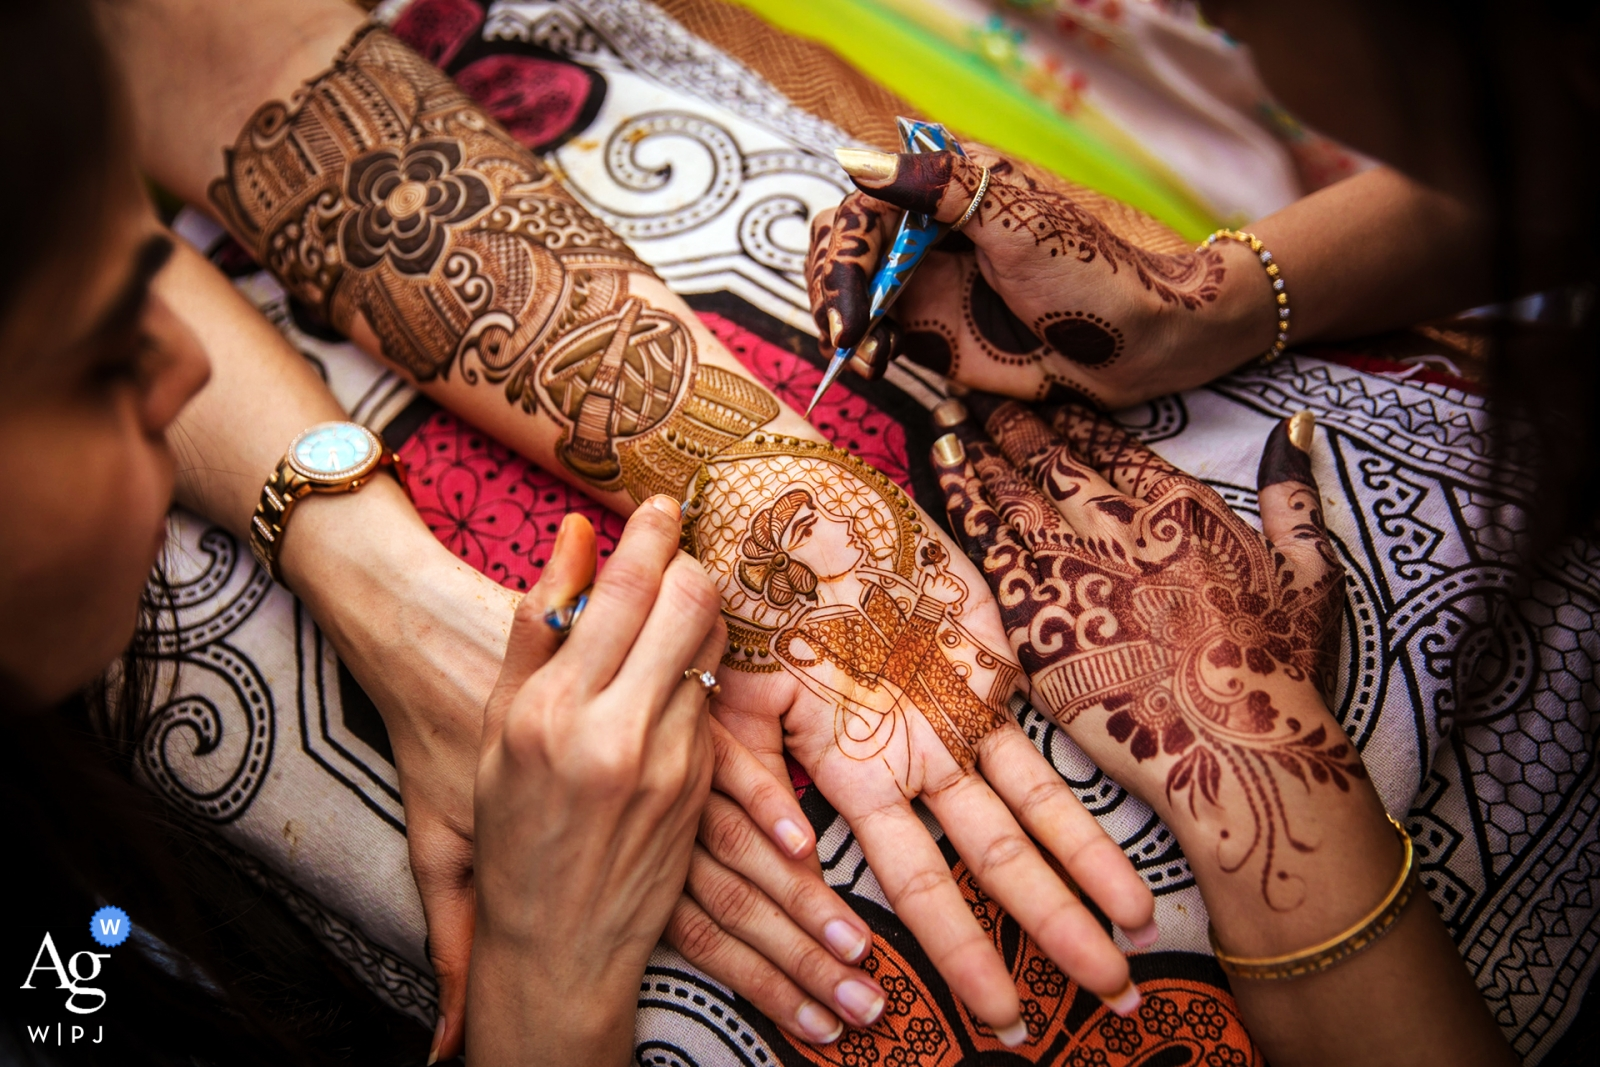 Mumbai, India Wedding Photo Dettaglio di Henna - Bellezza nel caos